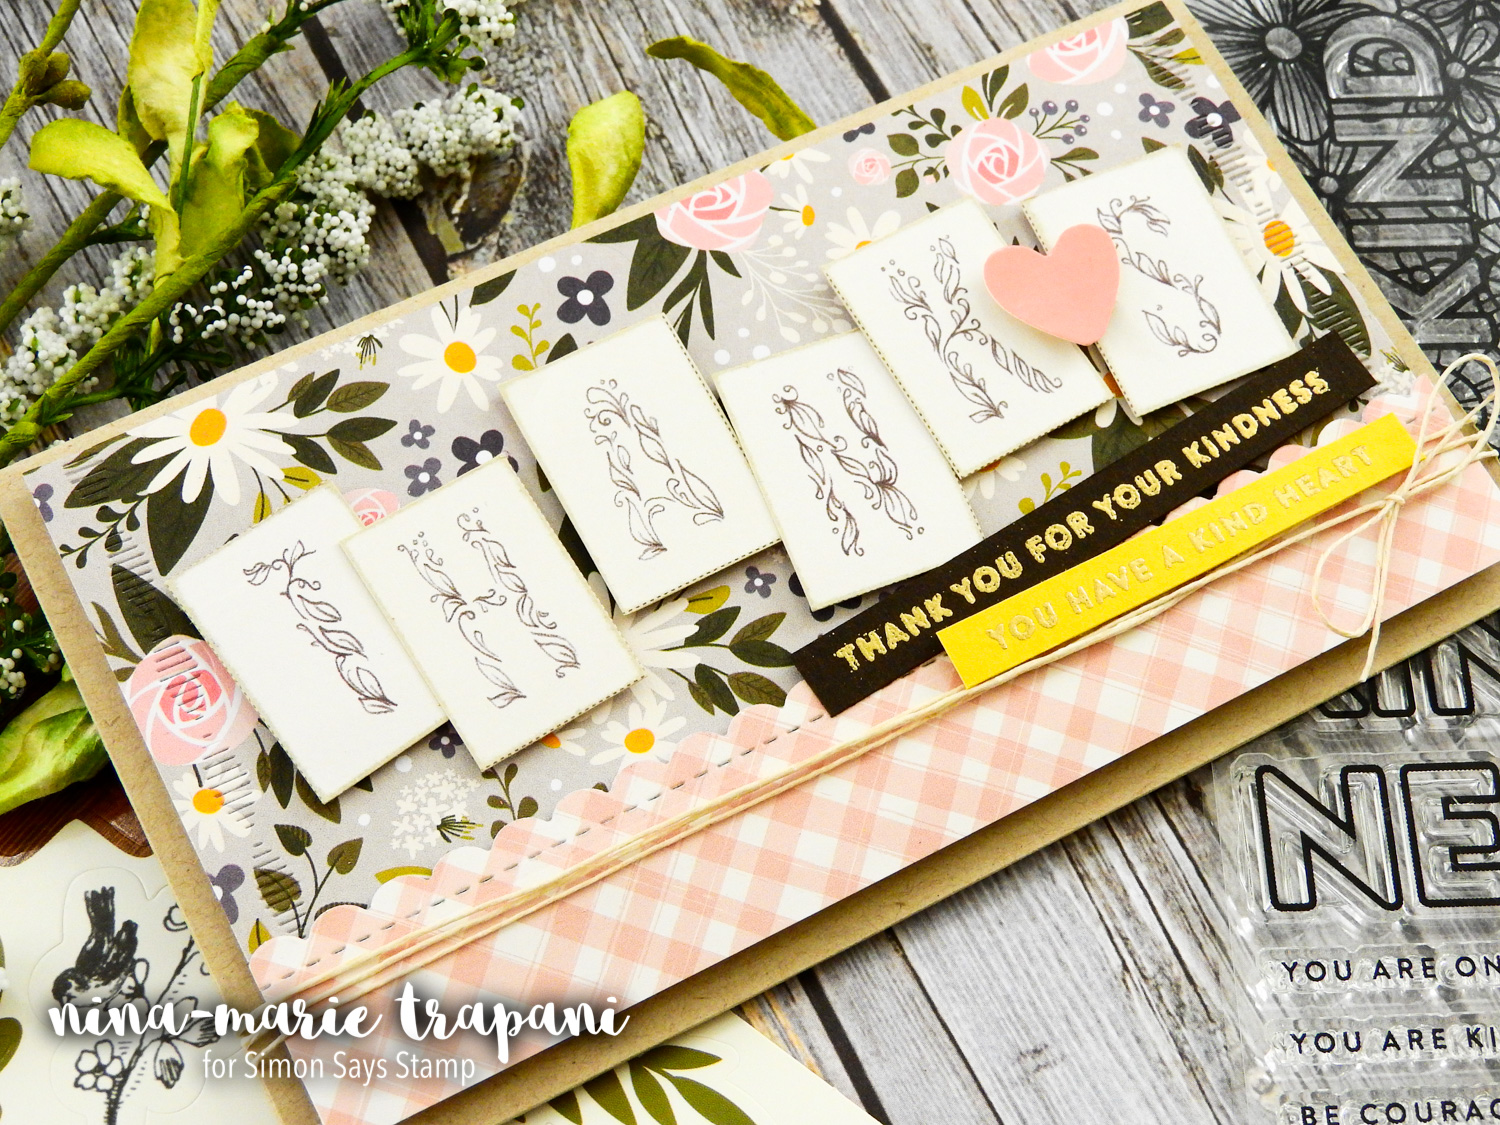 2 Ways to Use the Kind Flowers Card Kit from Simon Says Stamp | Nina-Marie Design